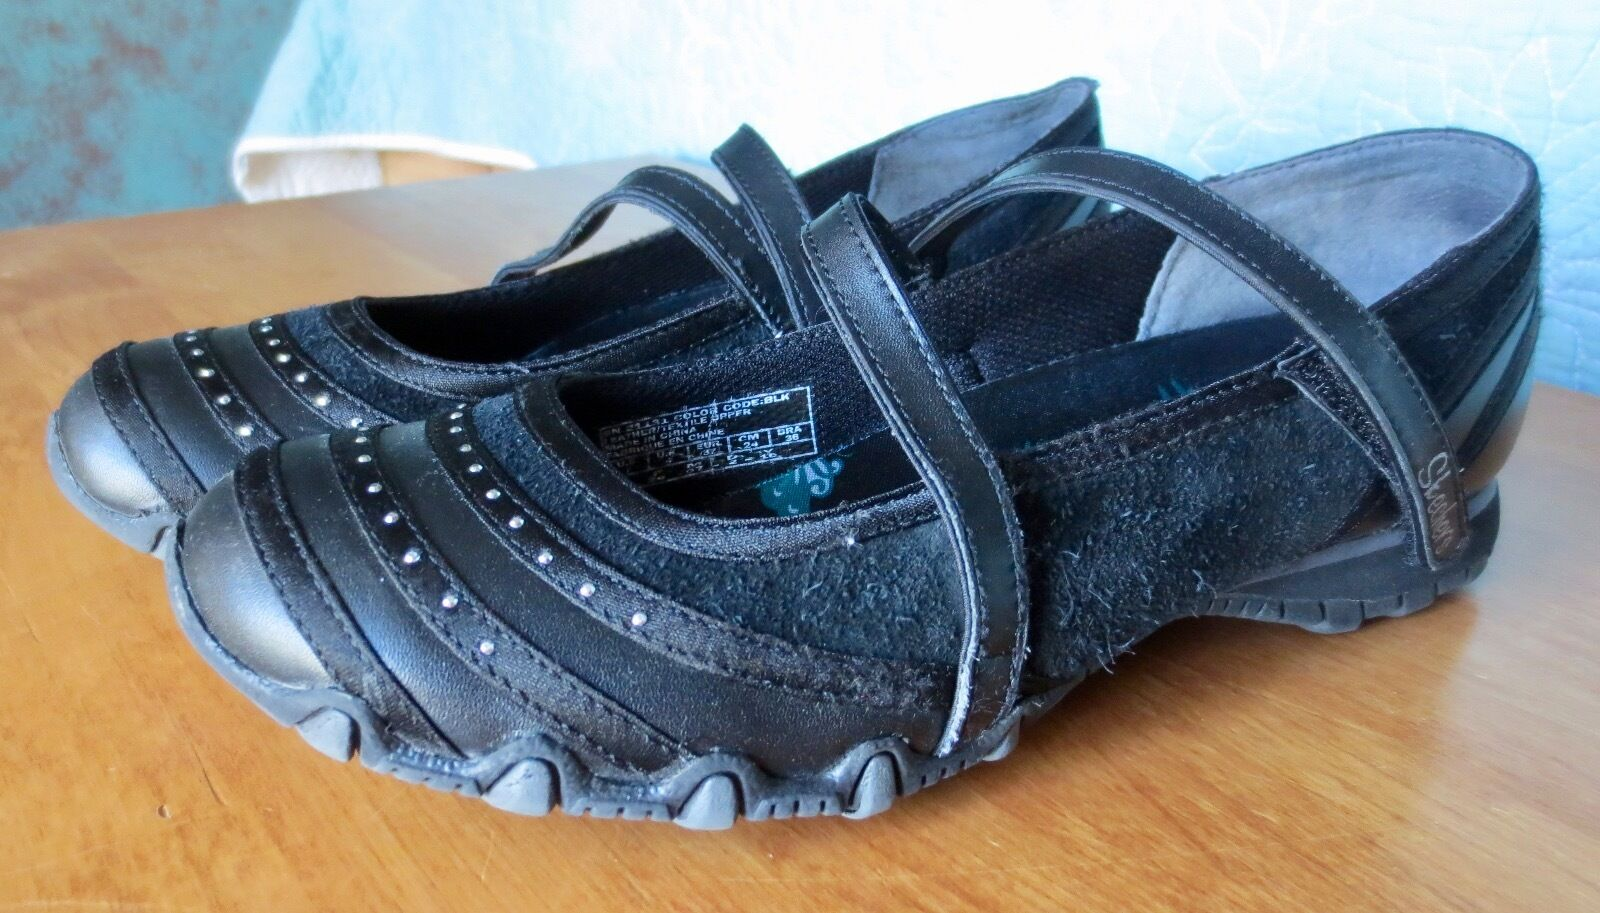 EUC Womens Skechers size 7 black sports flats best-selling model of the brand